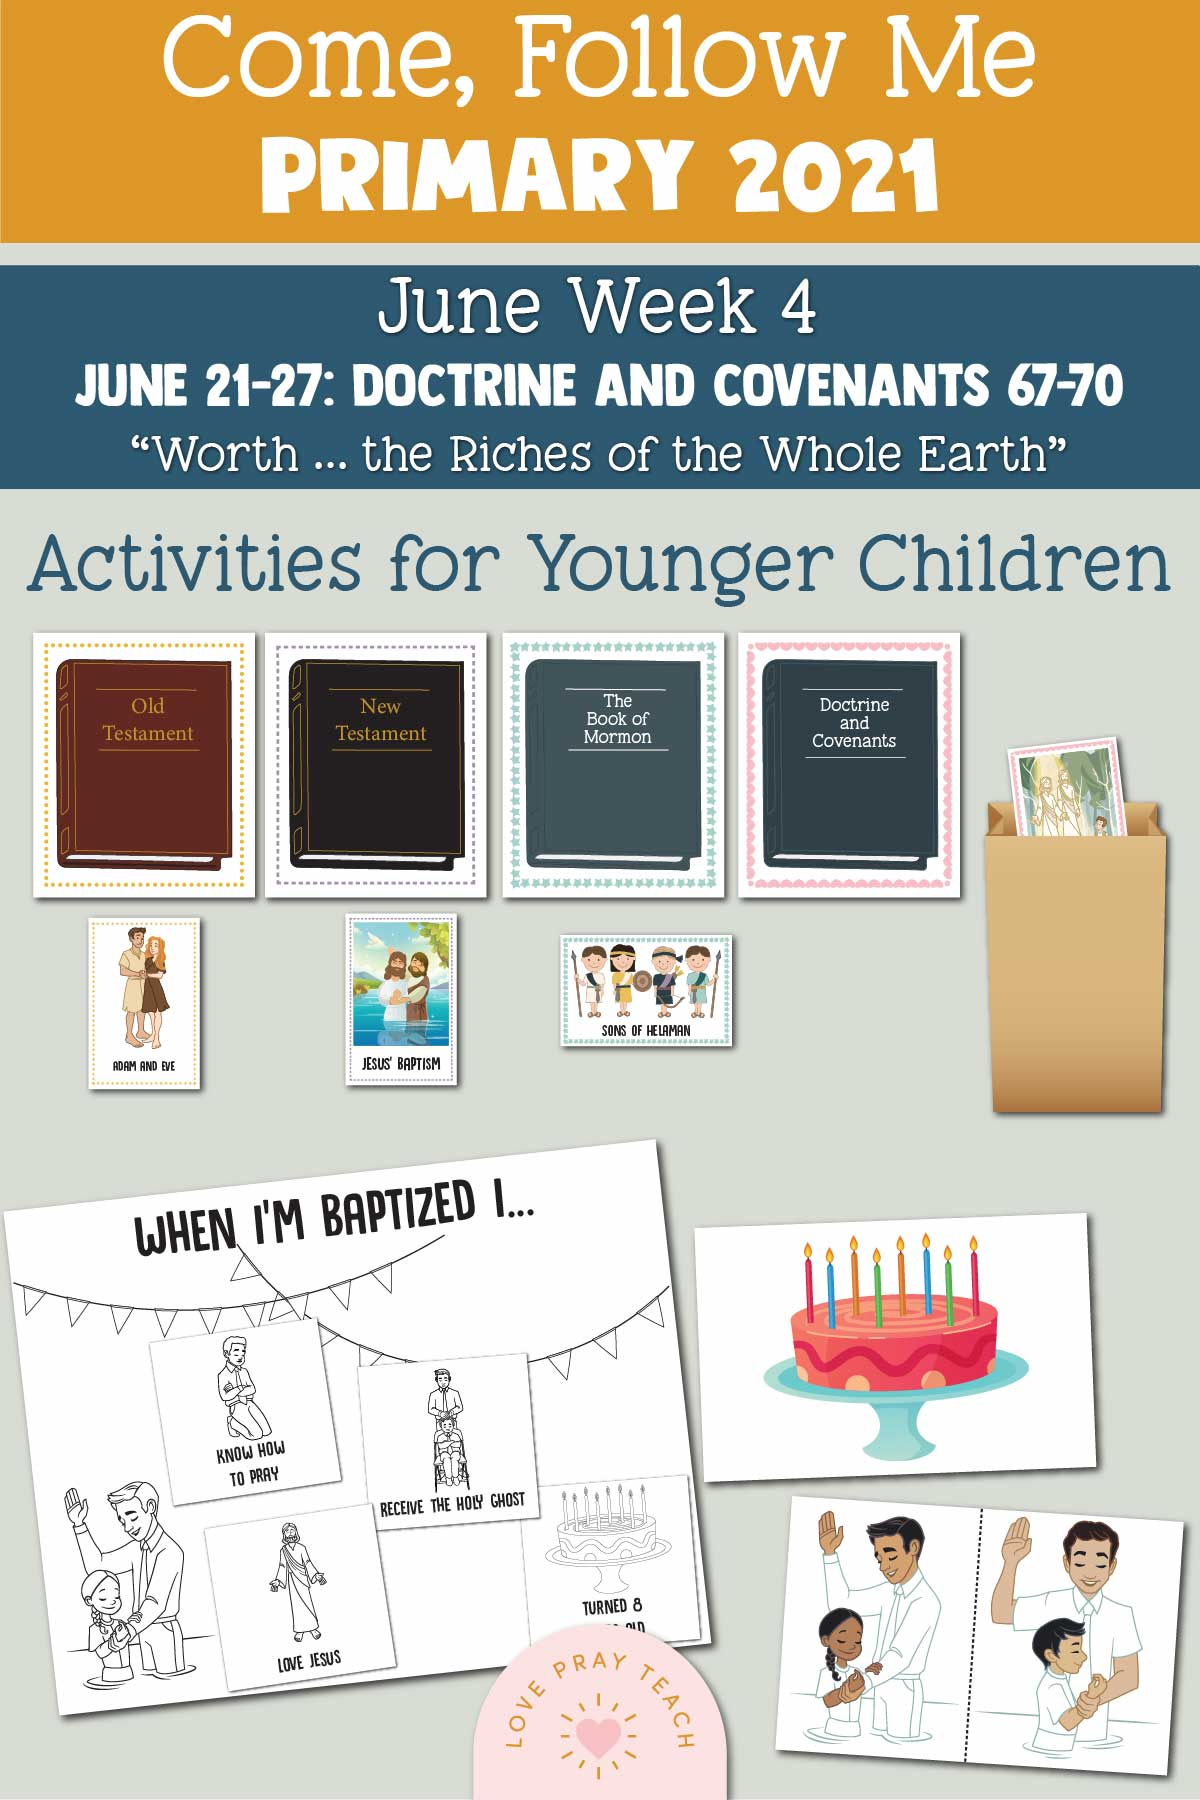 """Come, Follow Me for Primary 2021 June Week 4 Doctrine and Covenants 67-70 """"Worth … the Riches of the Whole Earth"""" Printable Lesson Materials"""